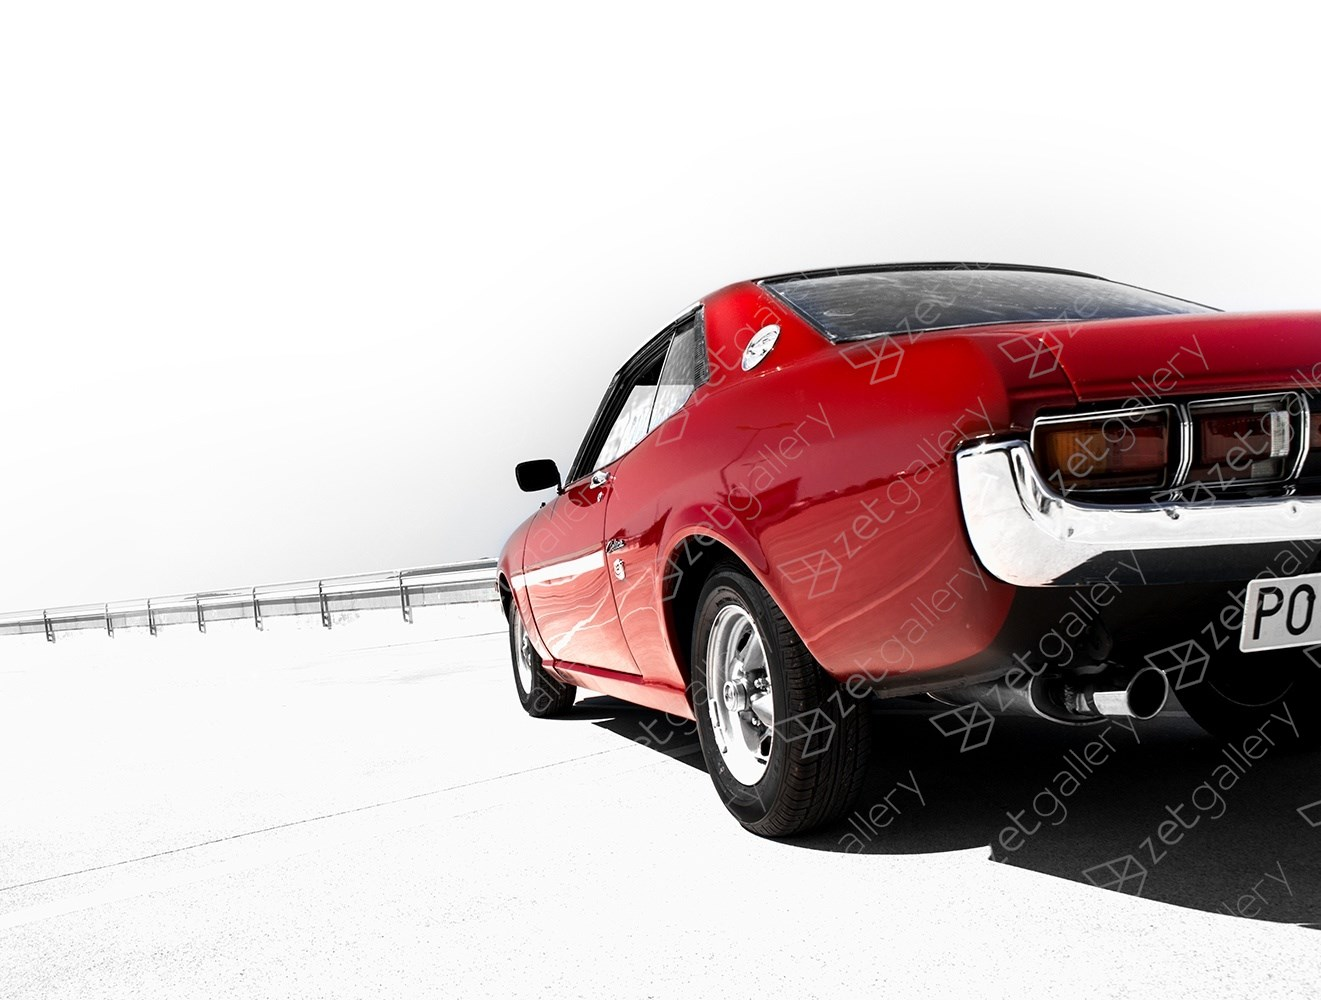 Toyota Celica GT 01, original Avant-Garde Digital Photography by Yggdrasil Art